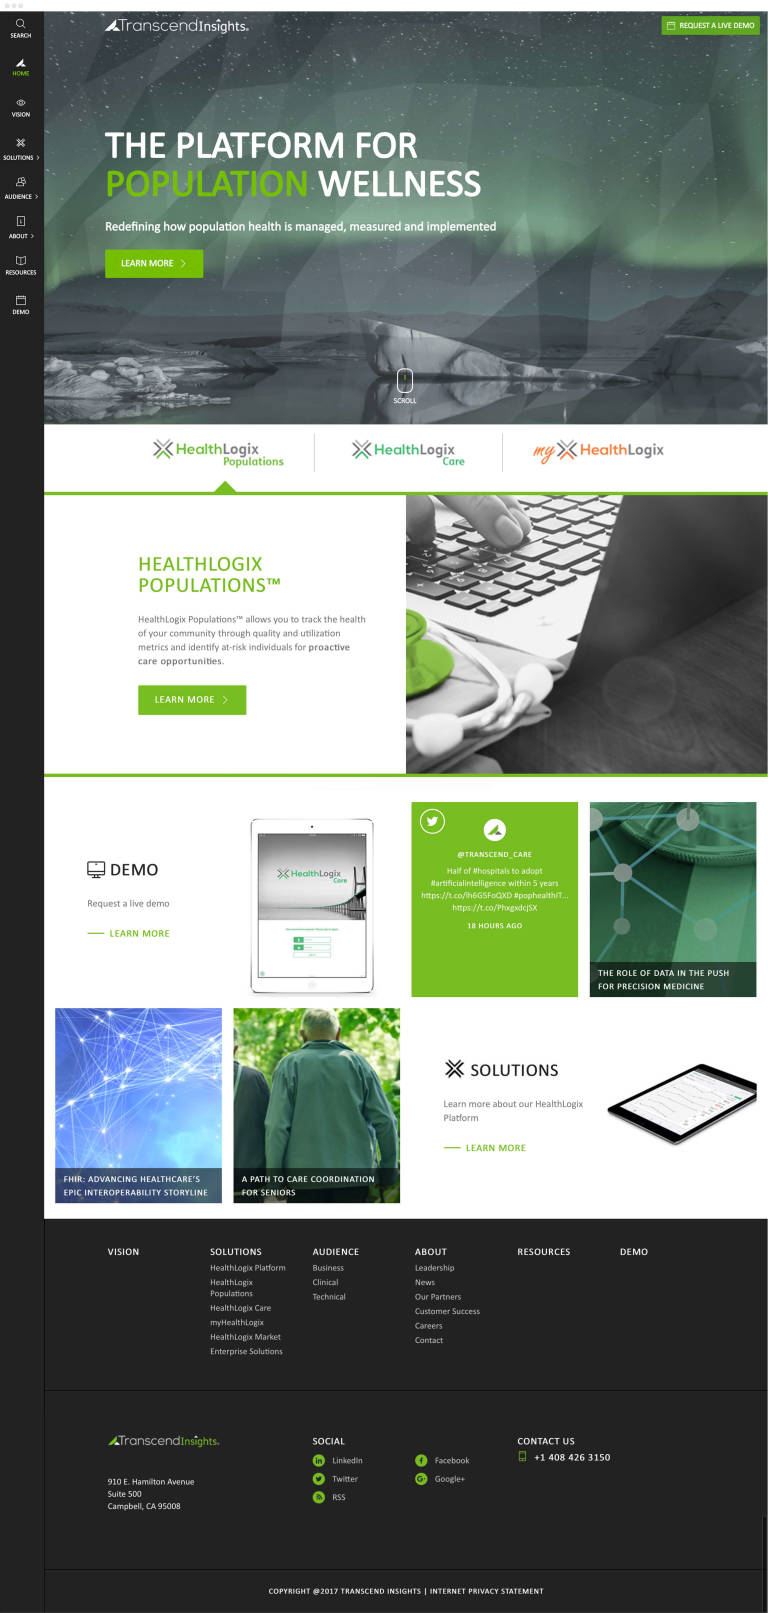 Transcend Insights home page